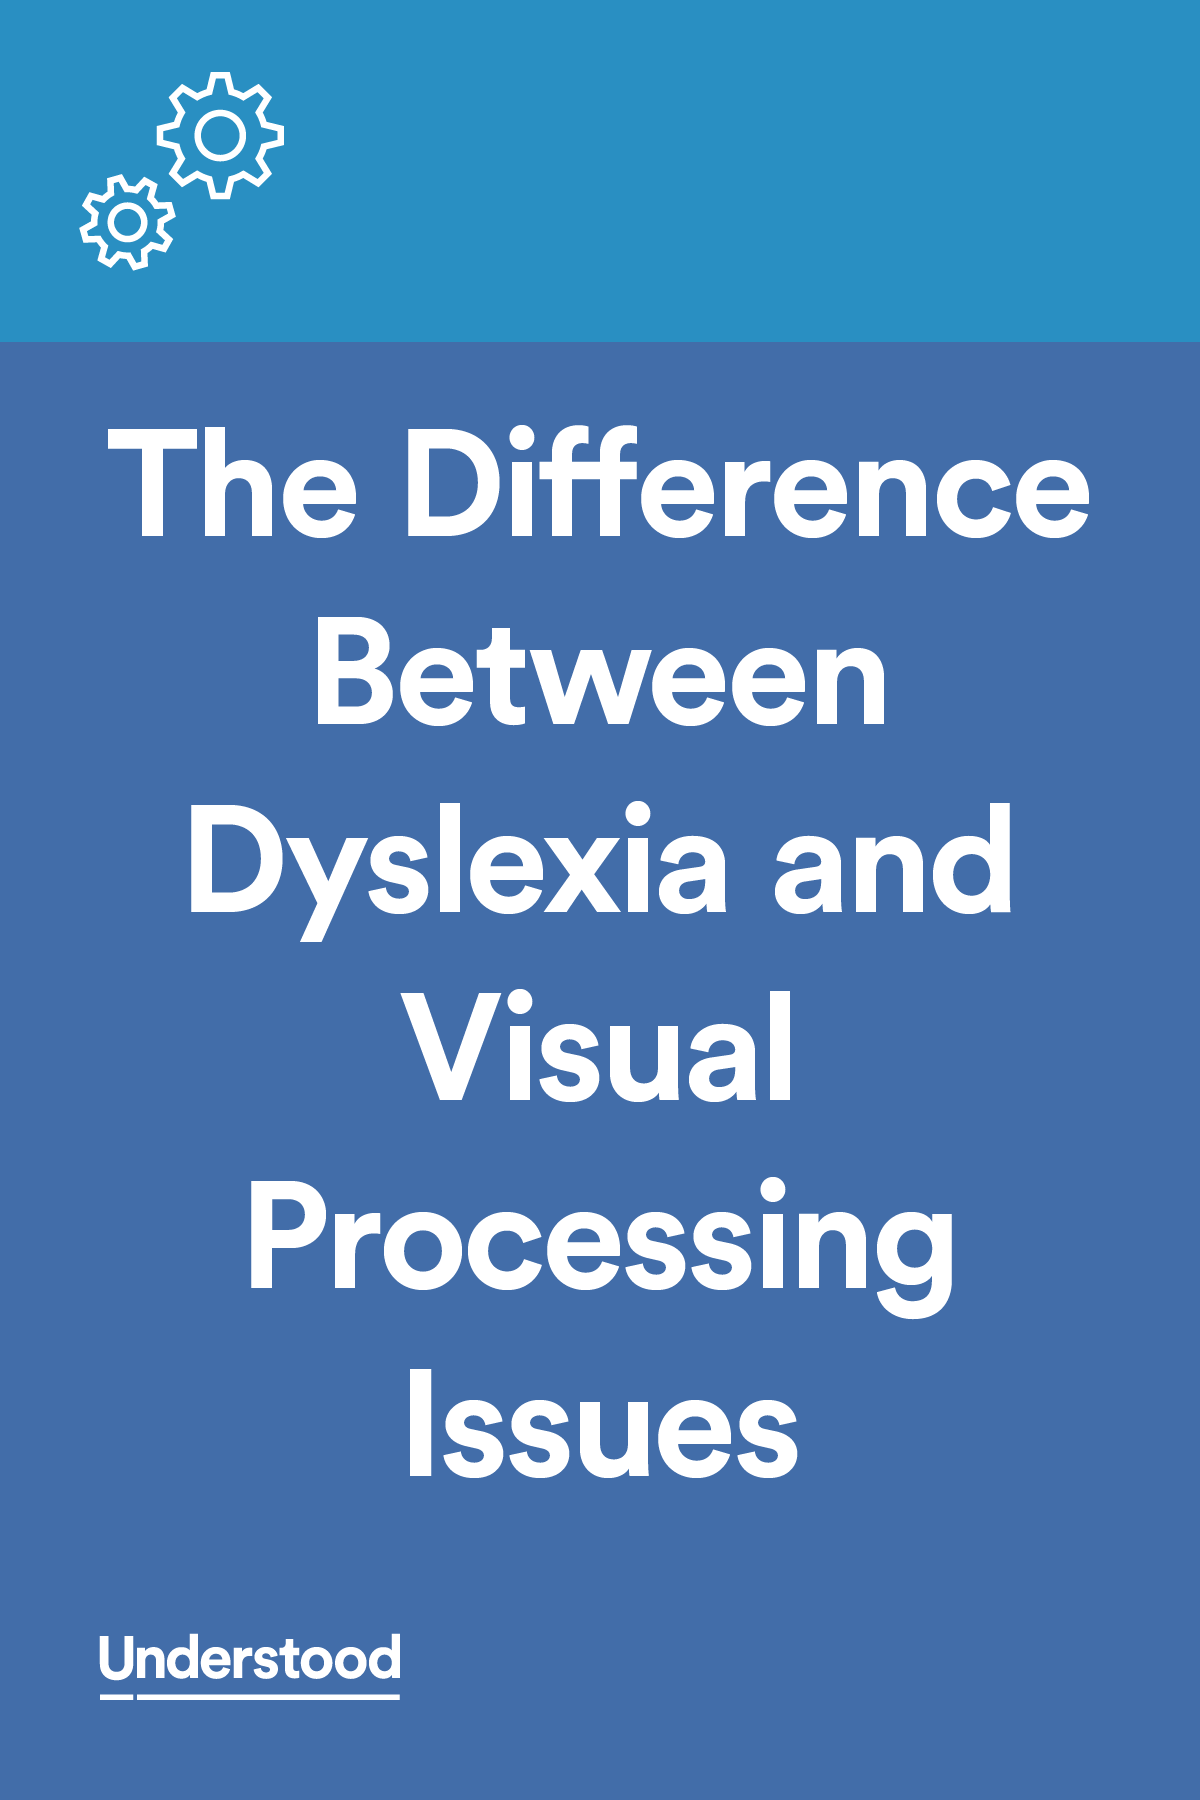 The Difference Between Dyslexia And Visual Processing Issues